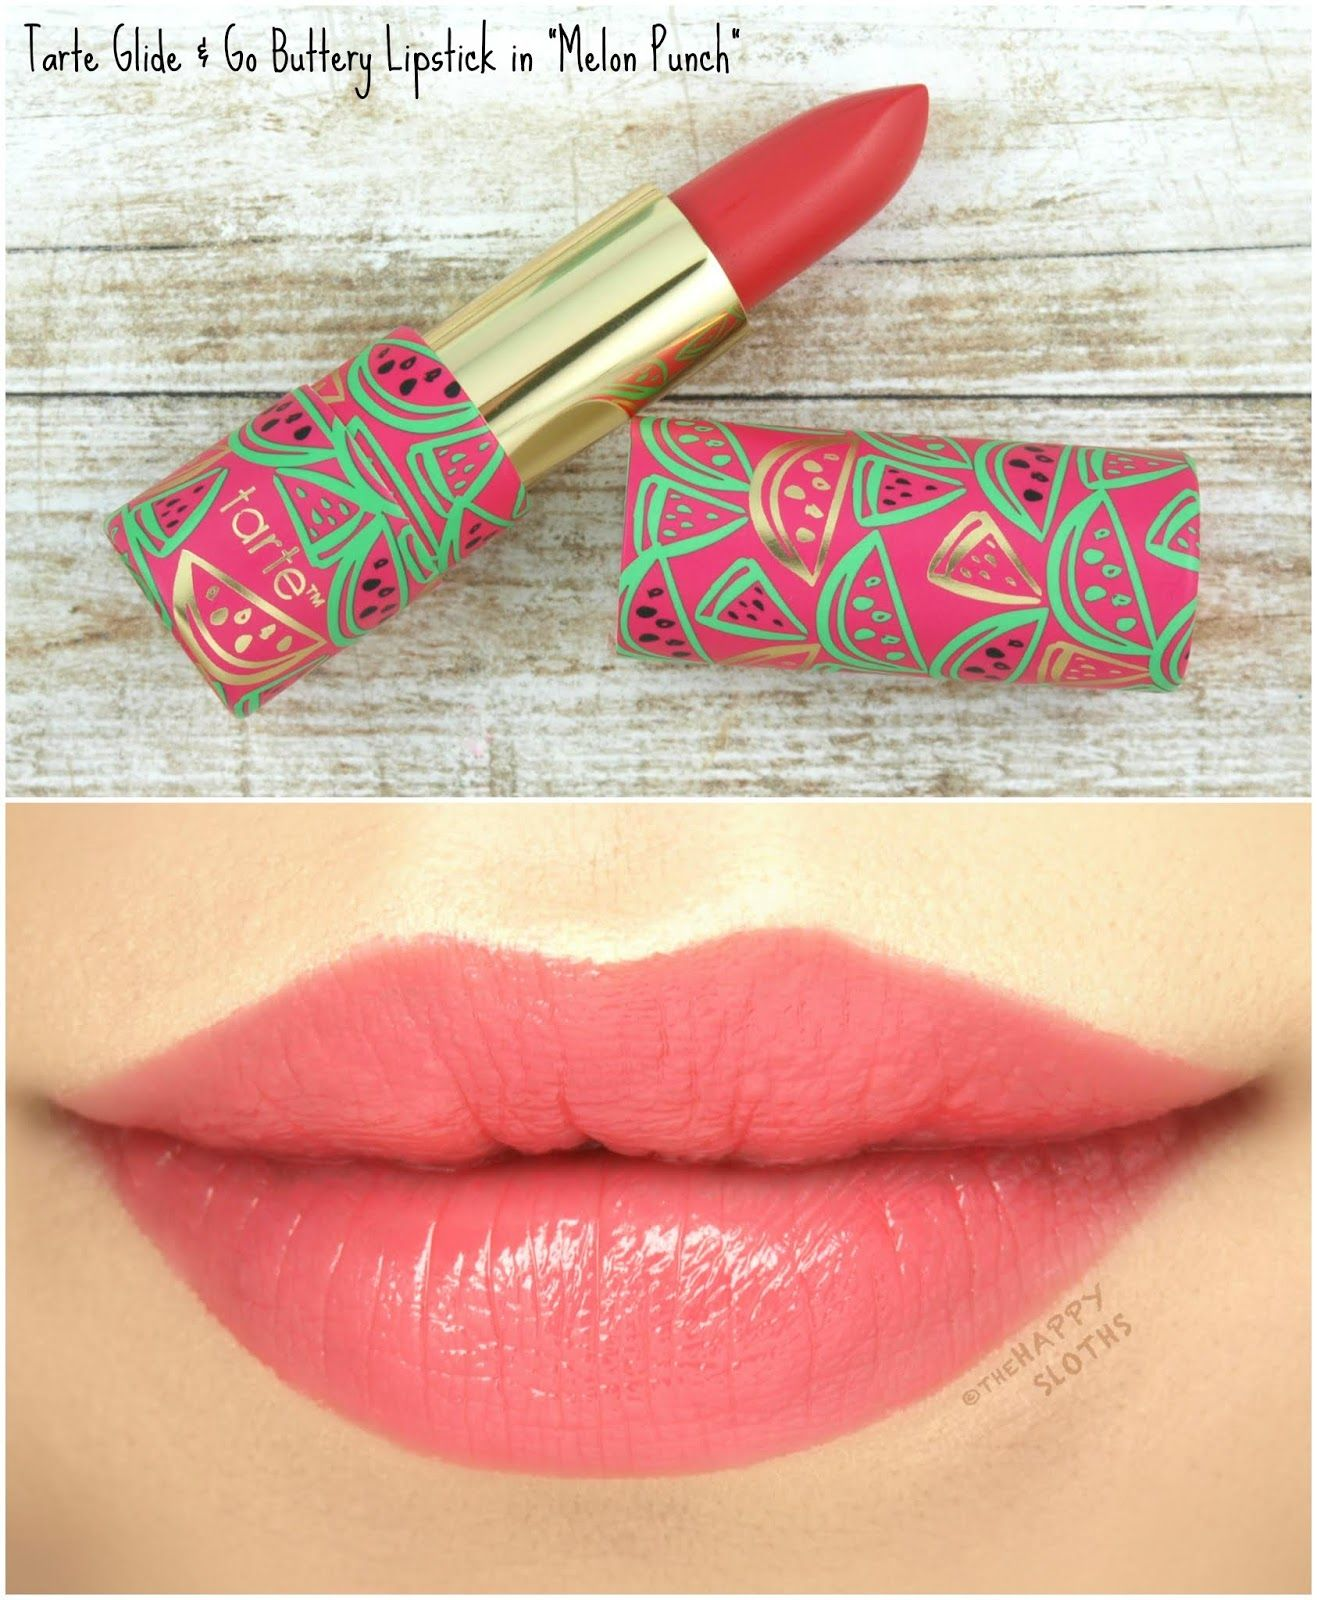 Tarte Double Duty Beauty Glide Go Buttery Lipstick In Melon Punch Review And Swatches Lip Colors Lipstick Lipstick Kit